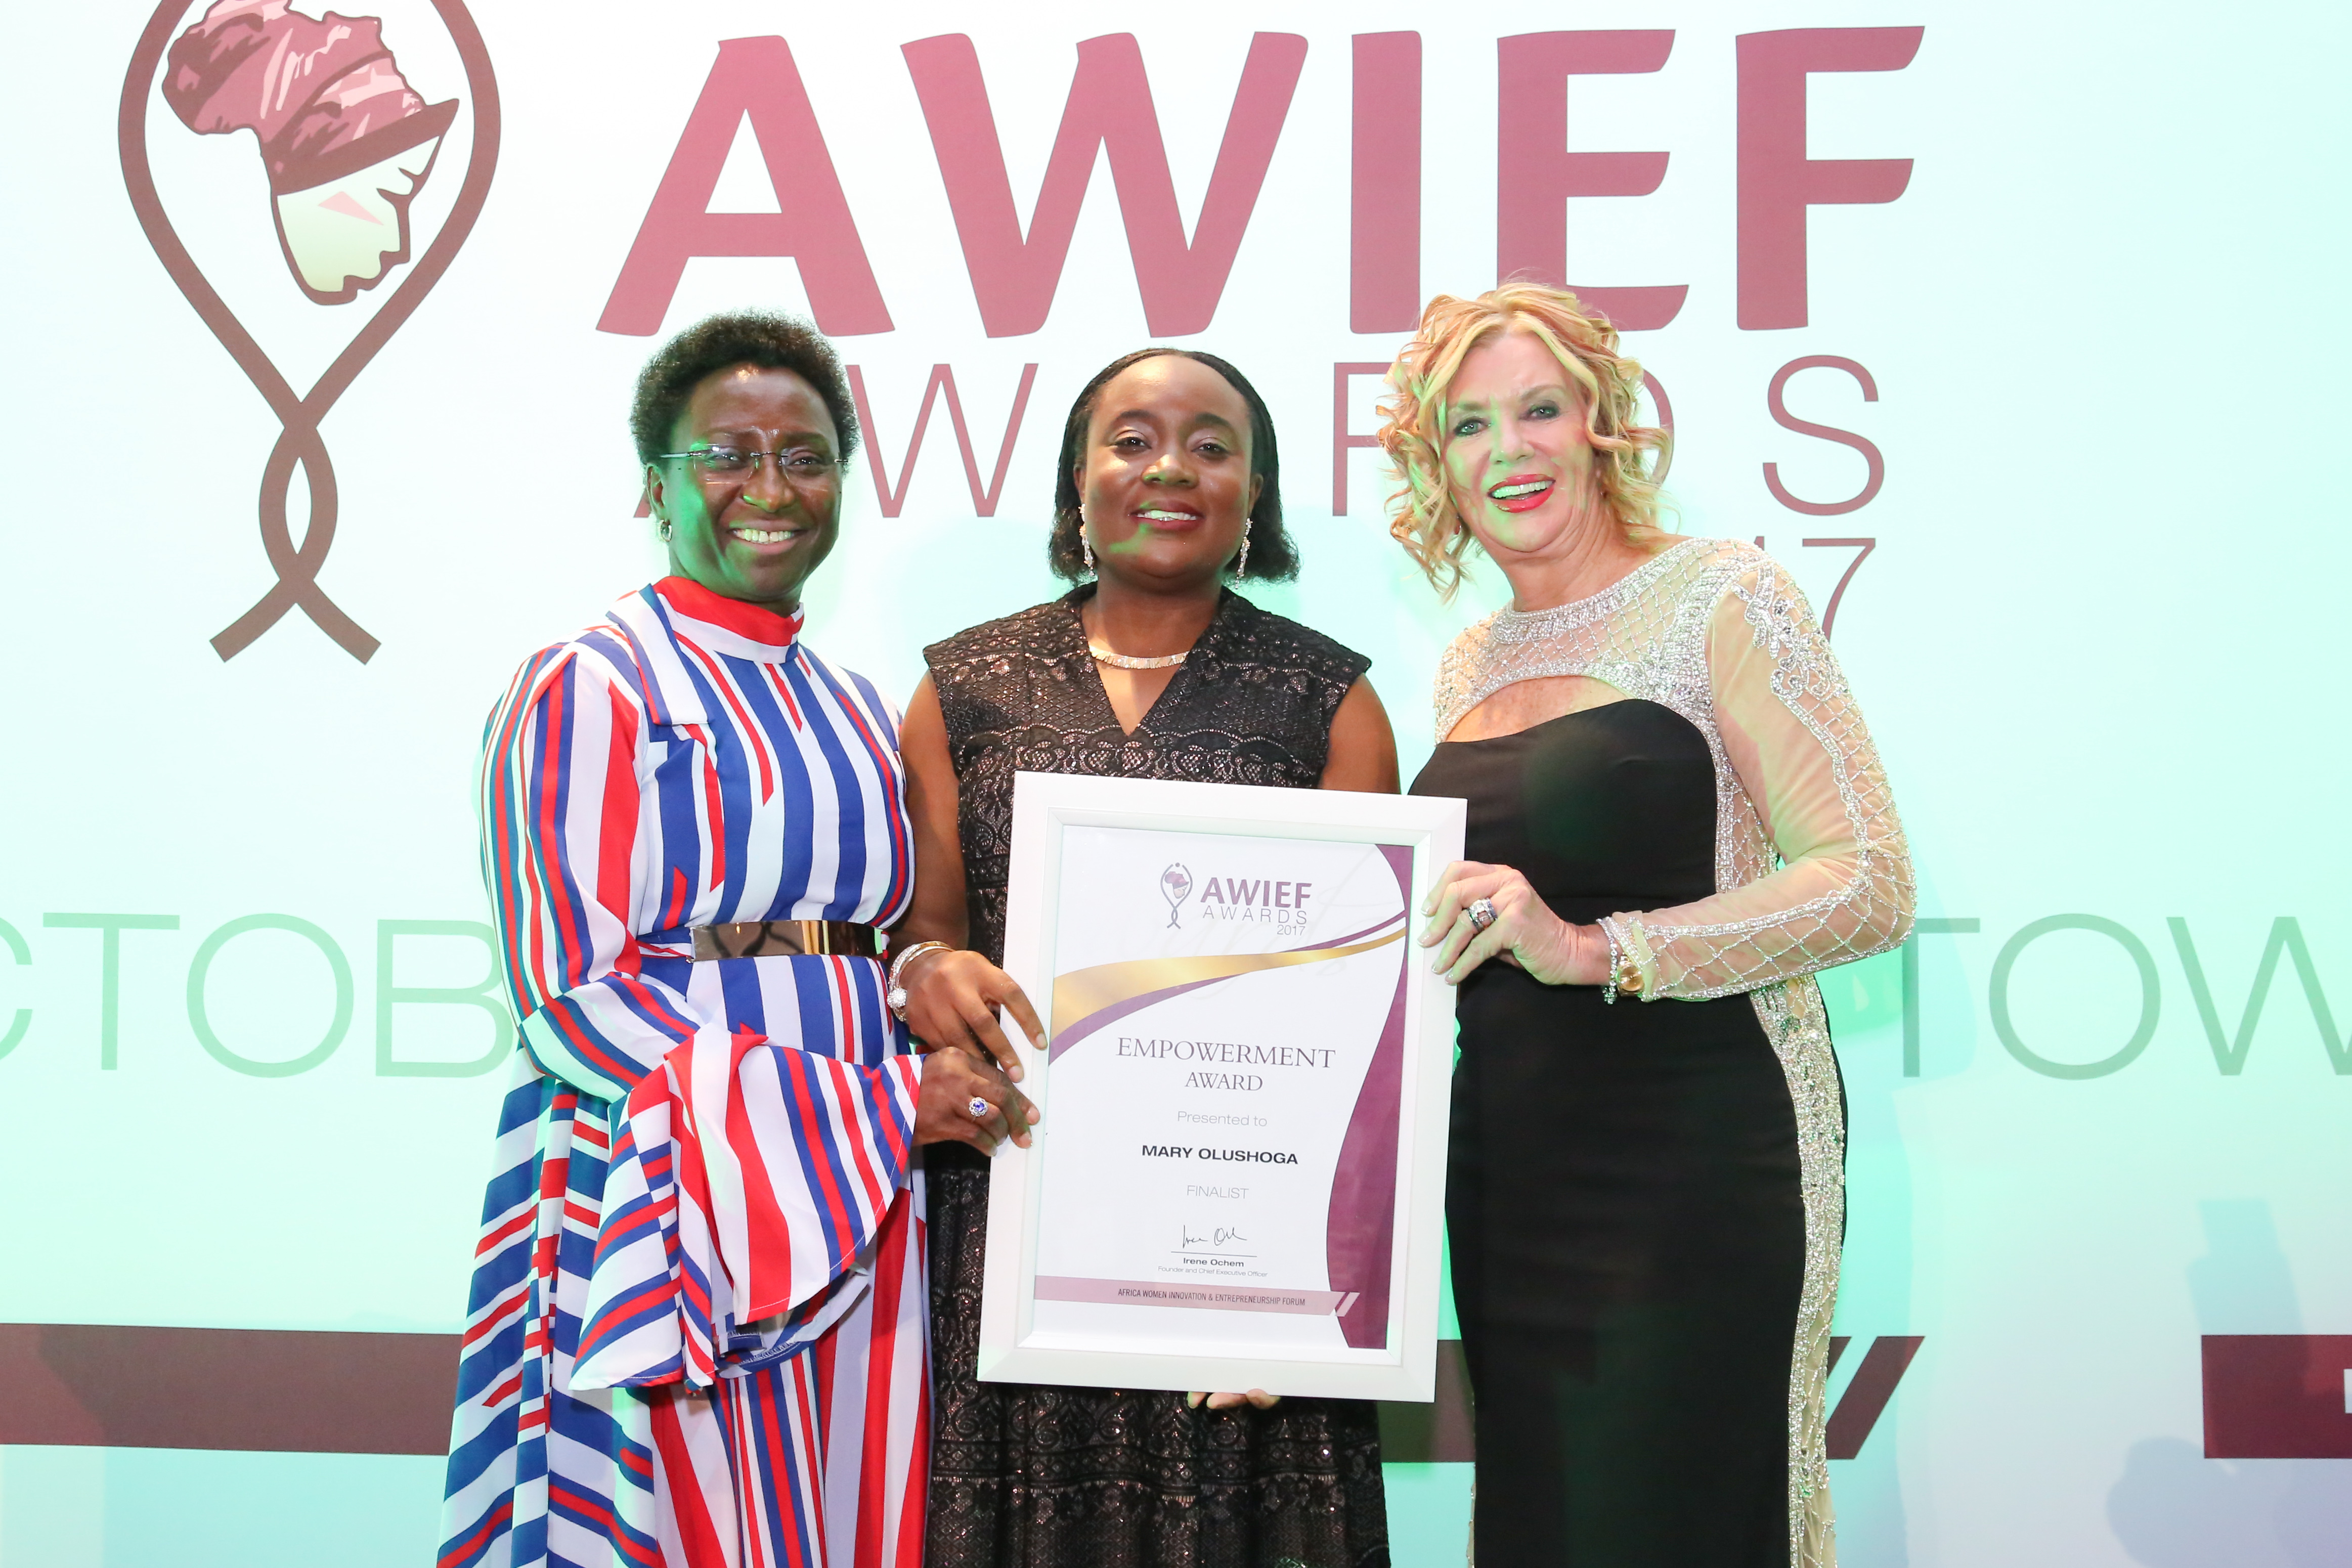 AWIEF 2017: MARY OLUSHOGA, FOUNDER OF AWP NETWORK WINS EMPOWERMENT AWARD